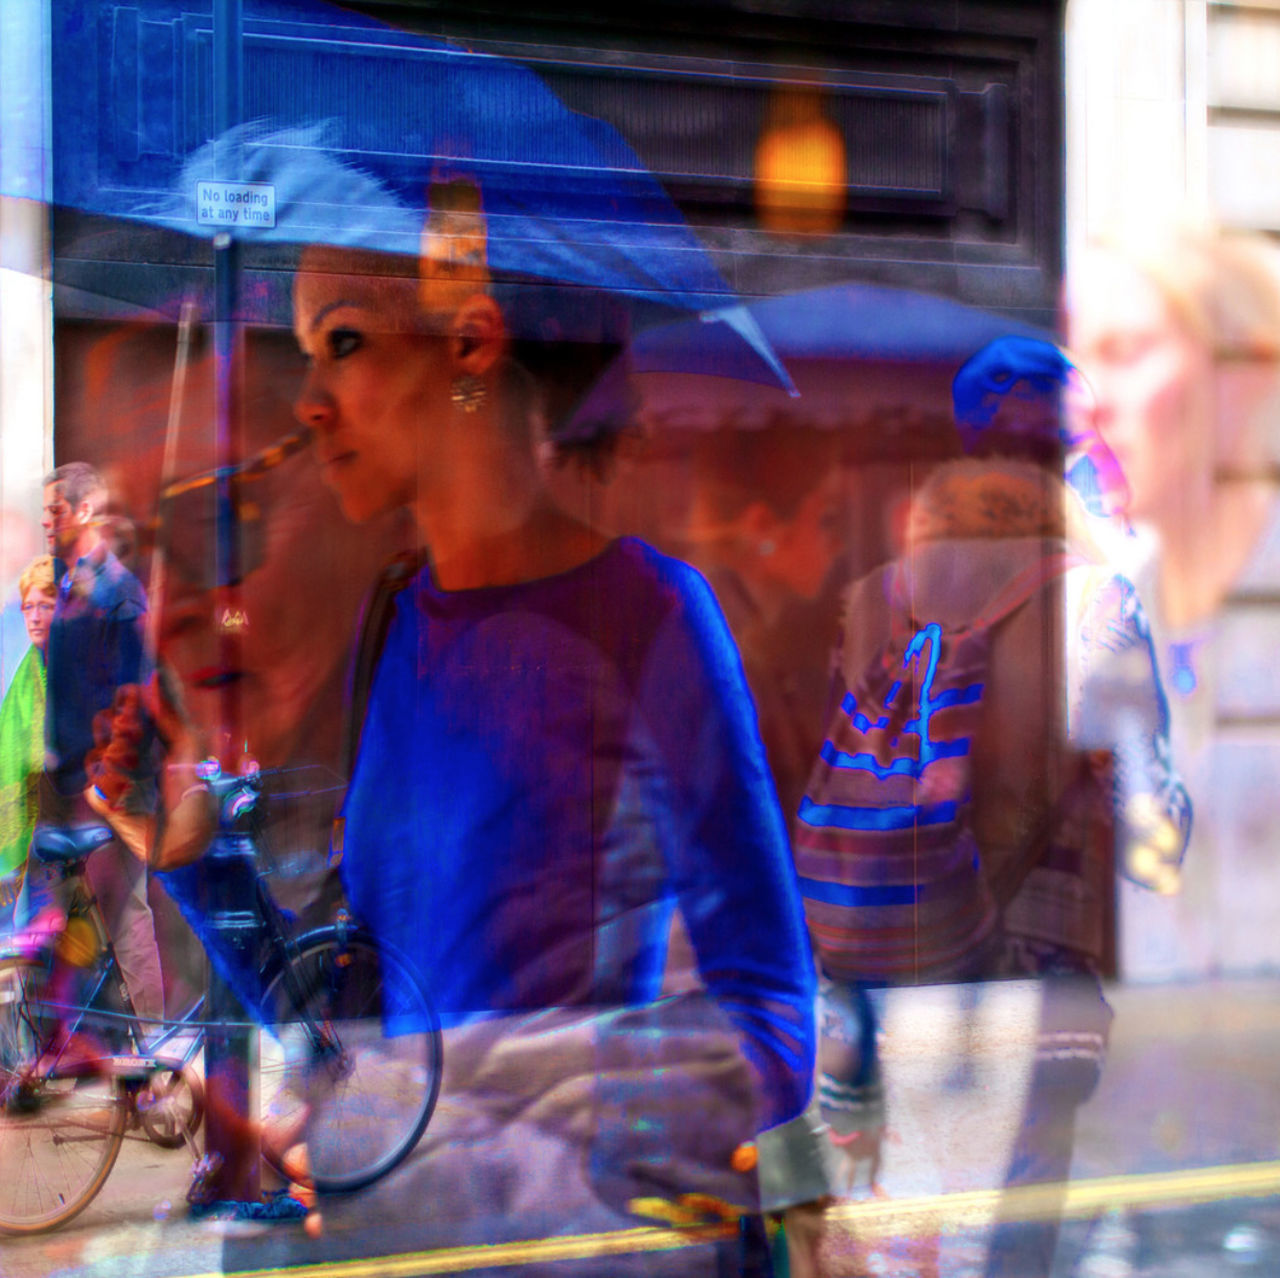 real people, blurred motion, city life, leisure activity, lifestyles, city, men, enjoyment, outdoors, motion, day, large group of people, holding, blue, crowd, young adult, adult, people, adults only